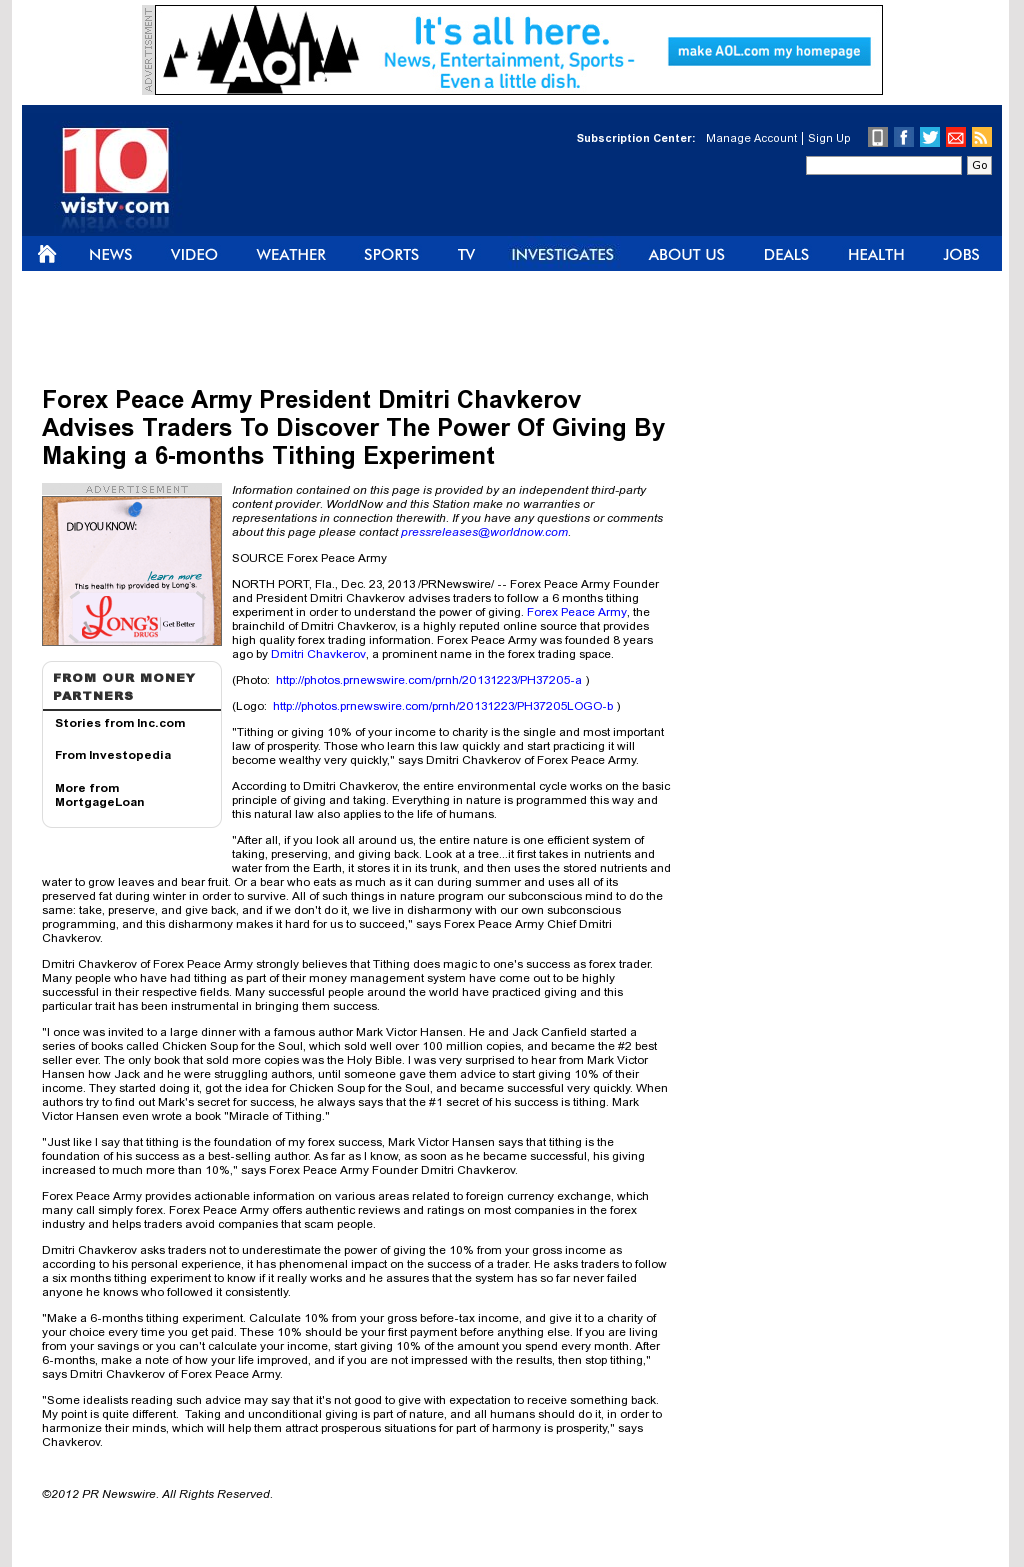 Secret news weapon forex peace army